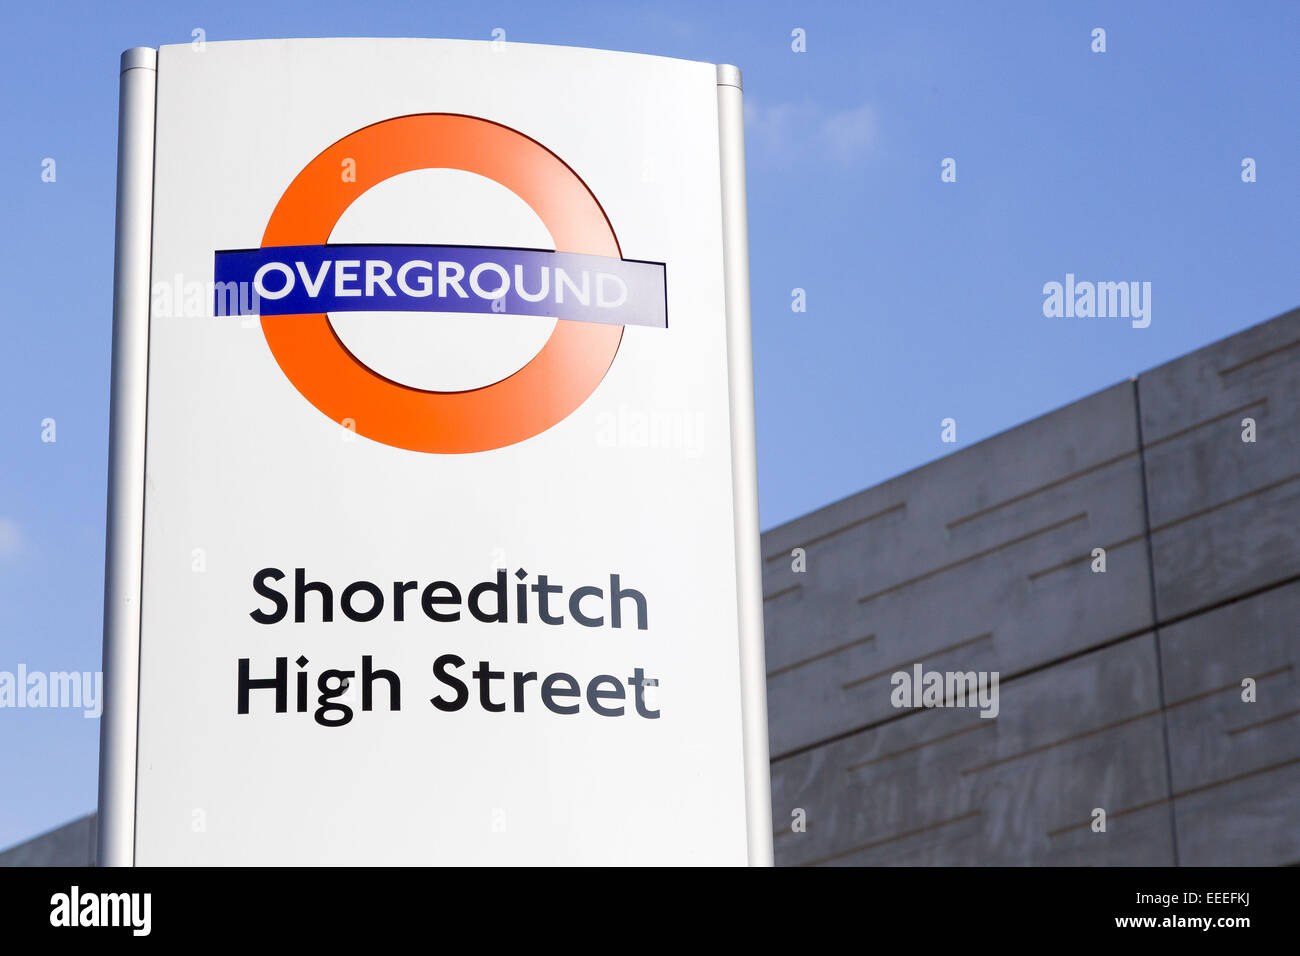 Overground roundel for Shoreditch High Street - Stock Image